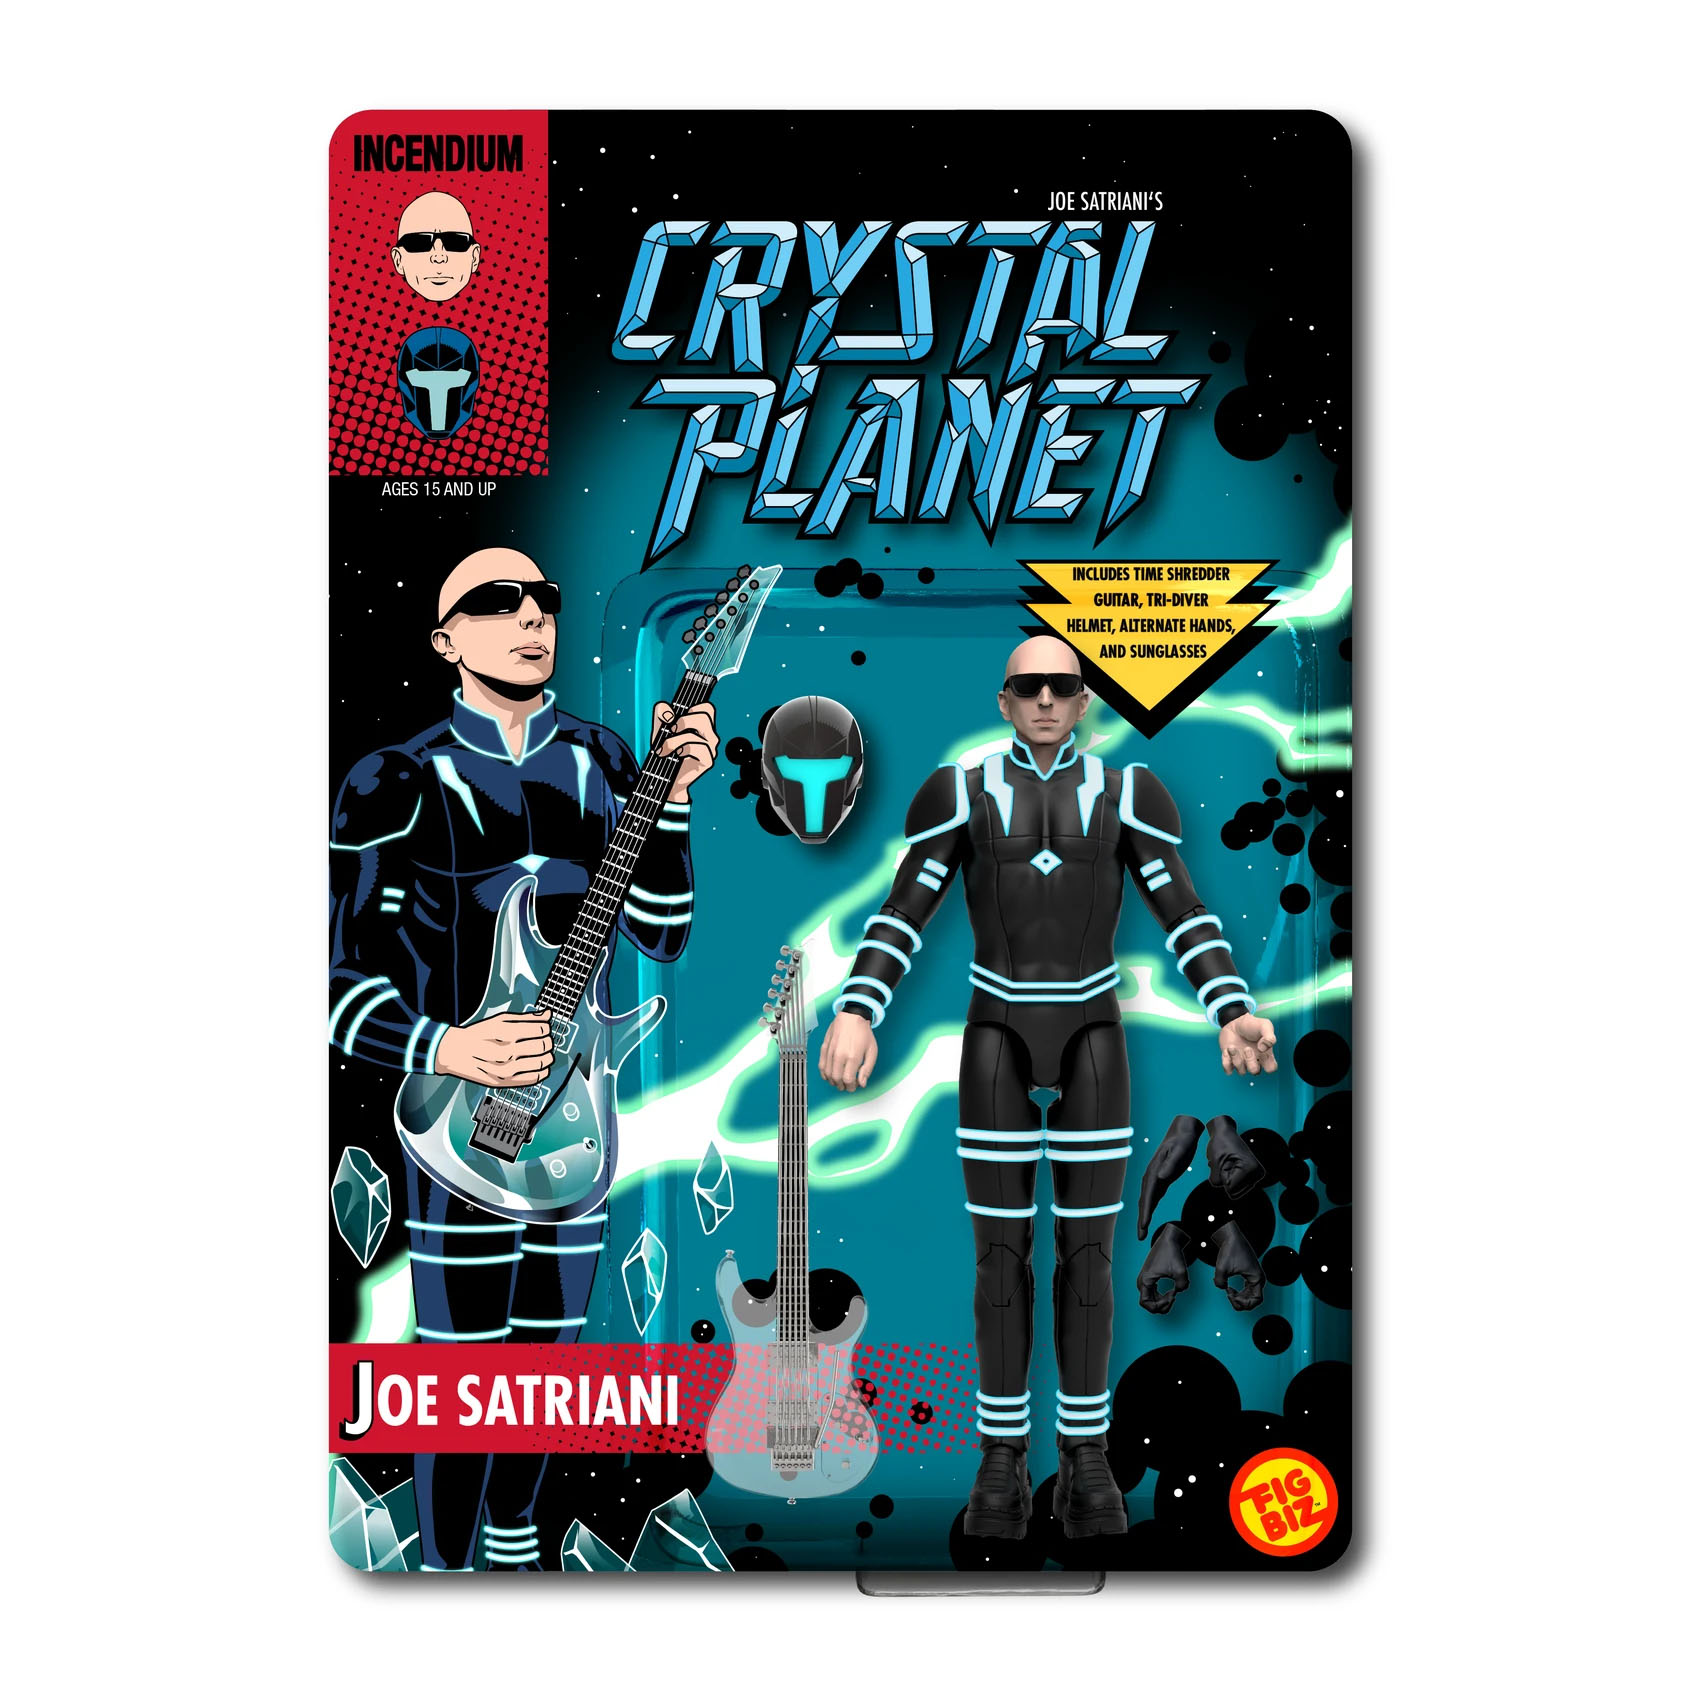 Incendium Joe Satriani Crystal Planet 001